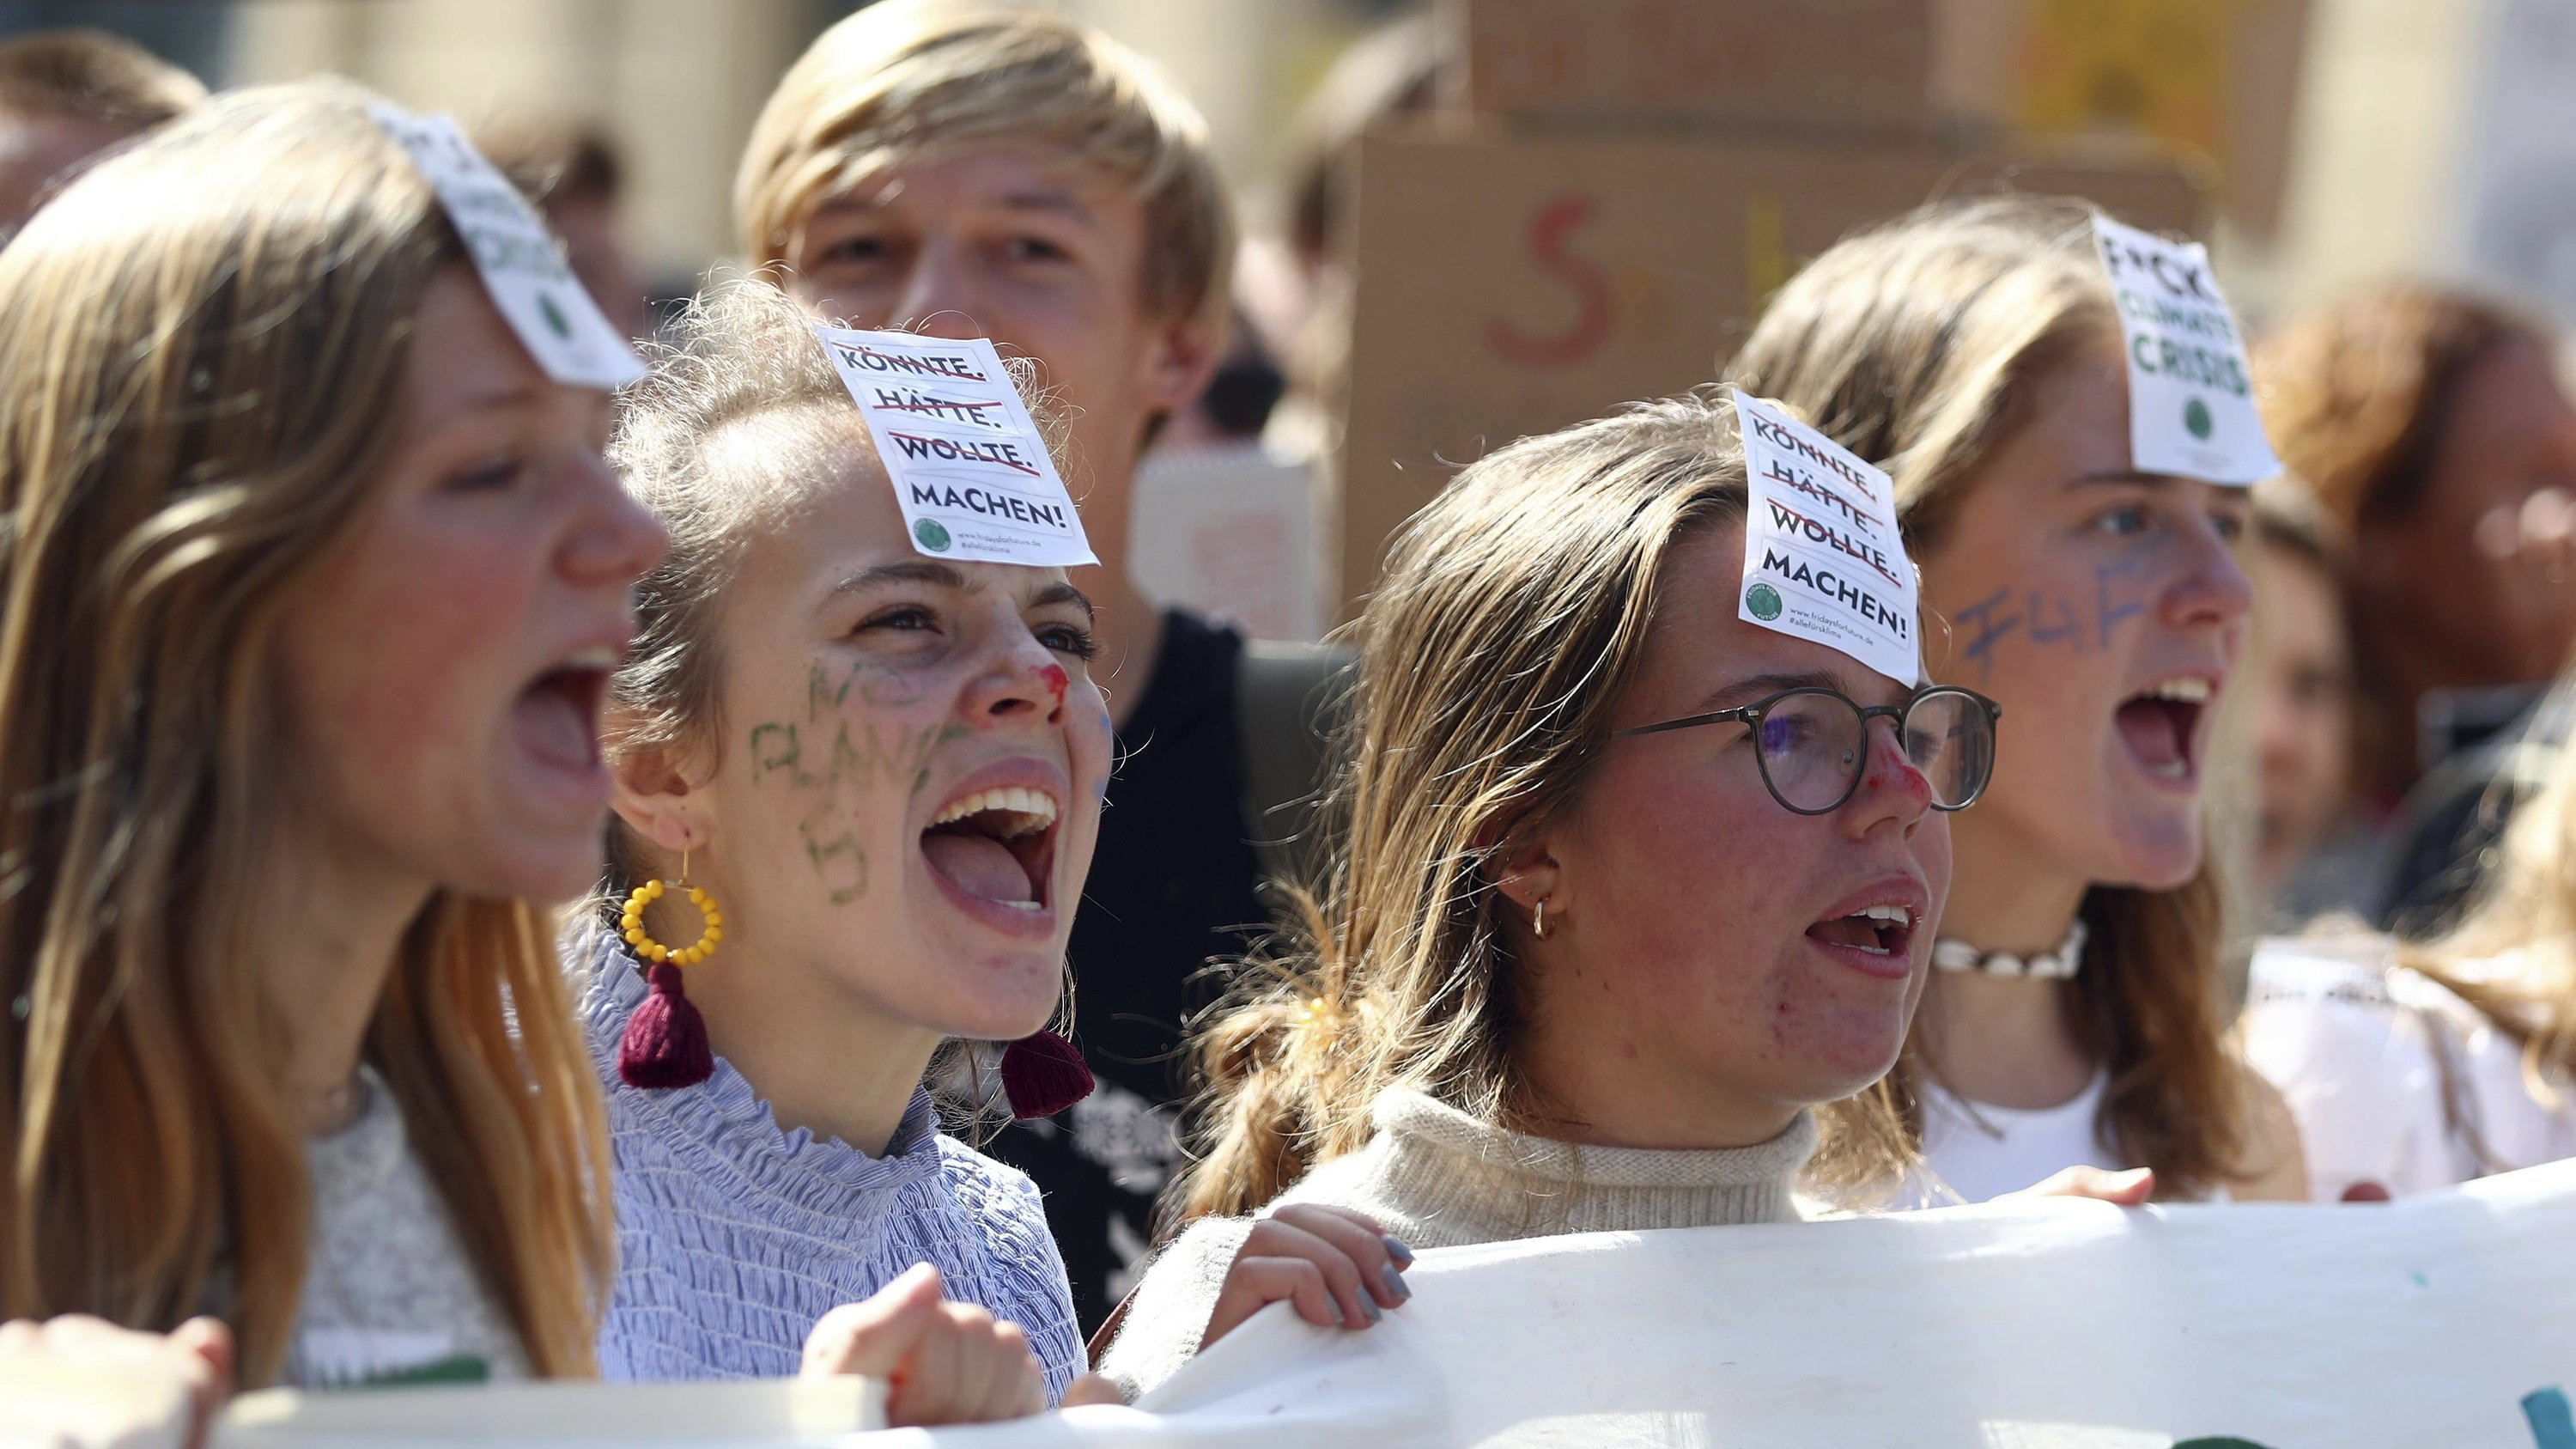 Young people lead global climate change protests